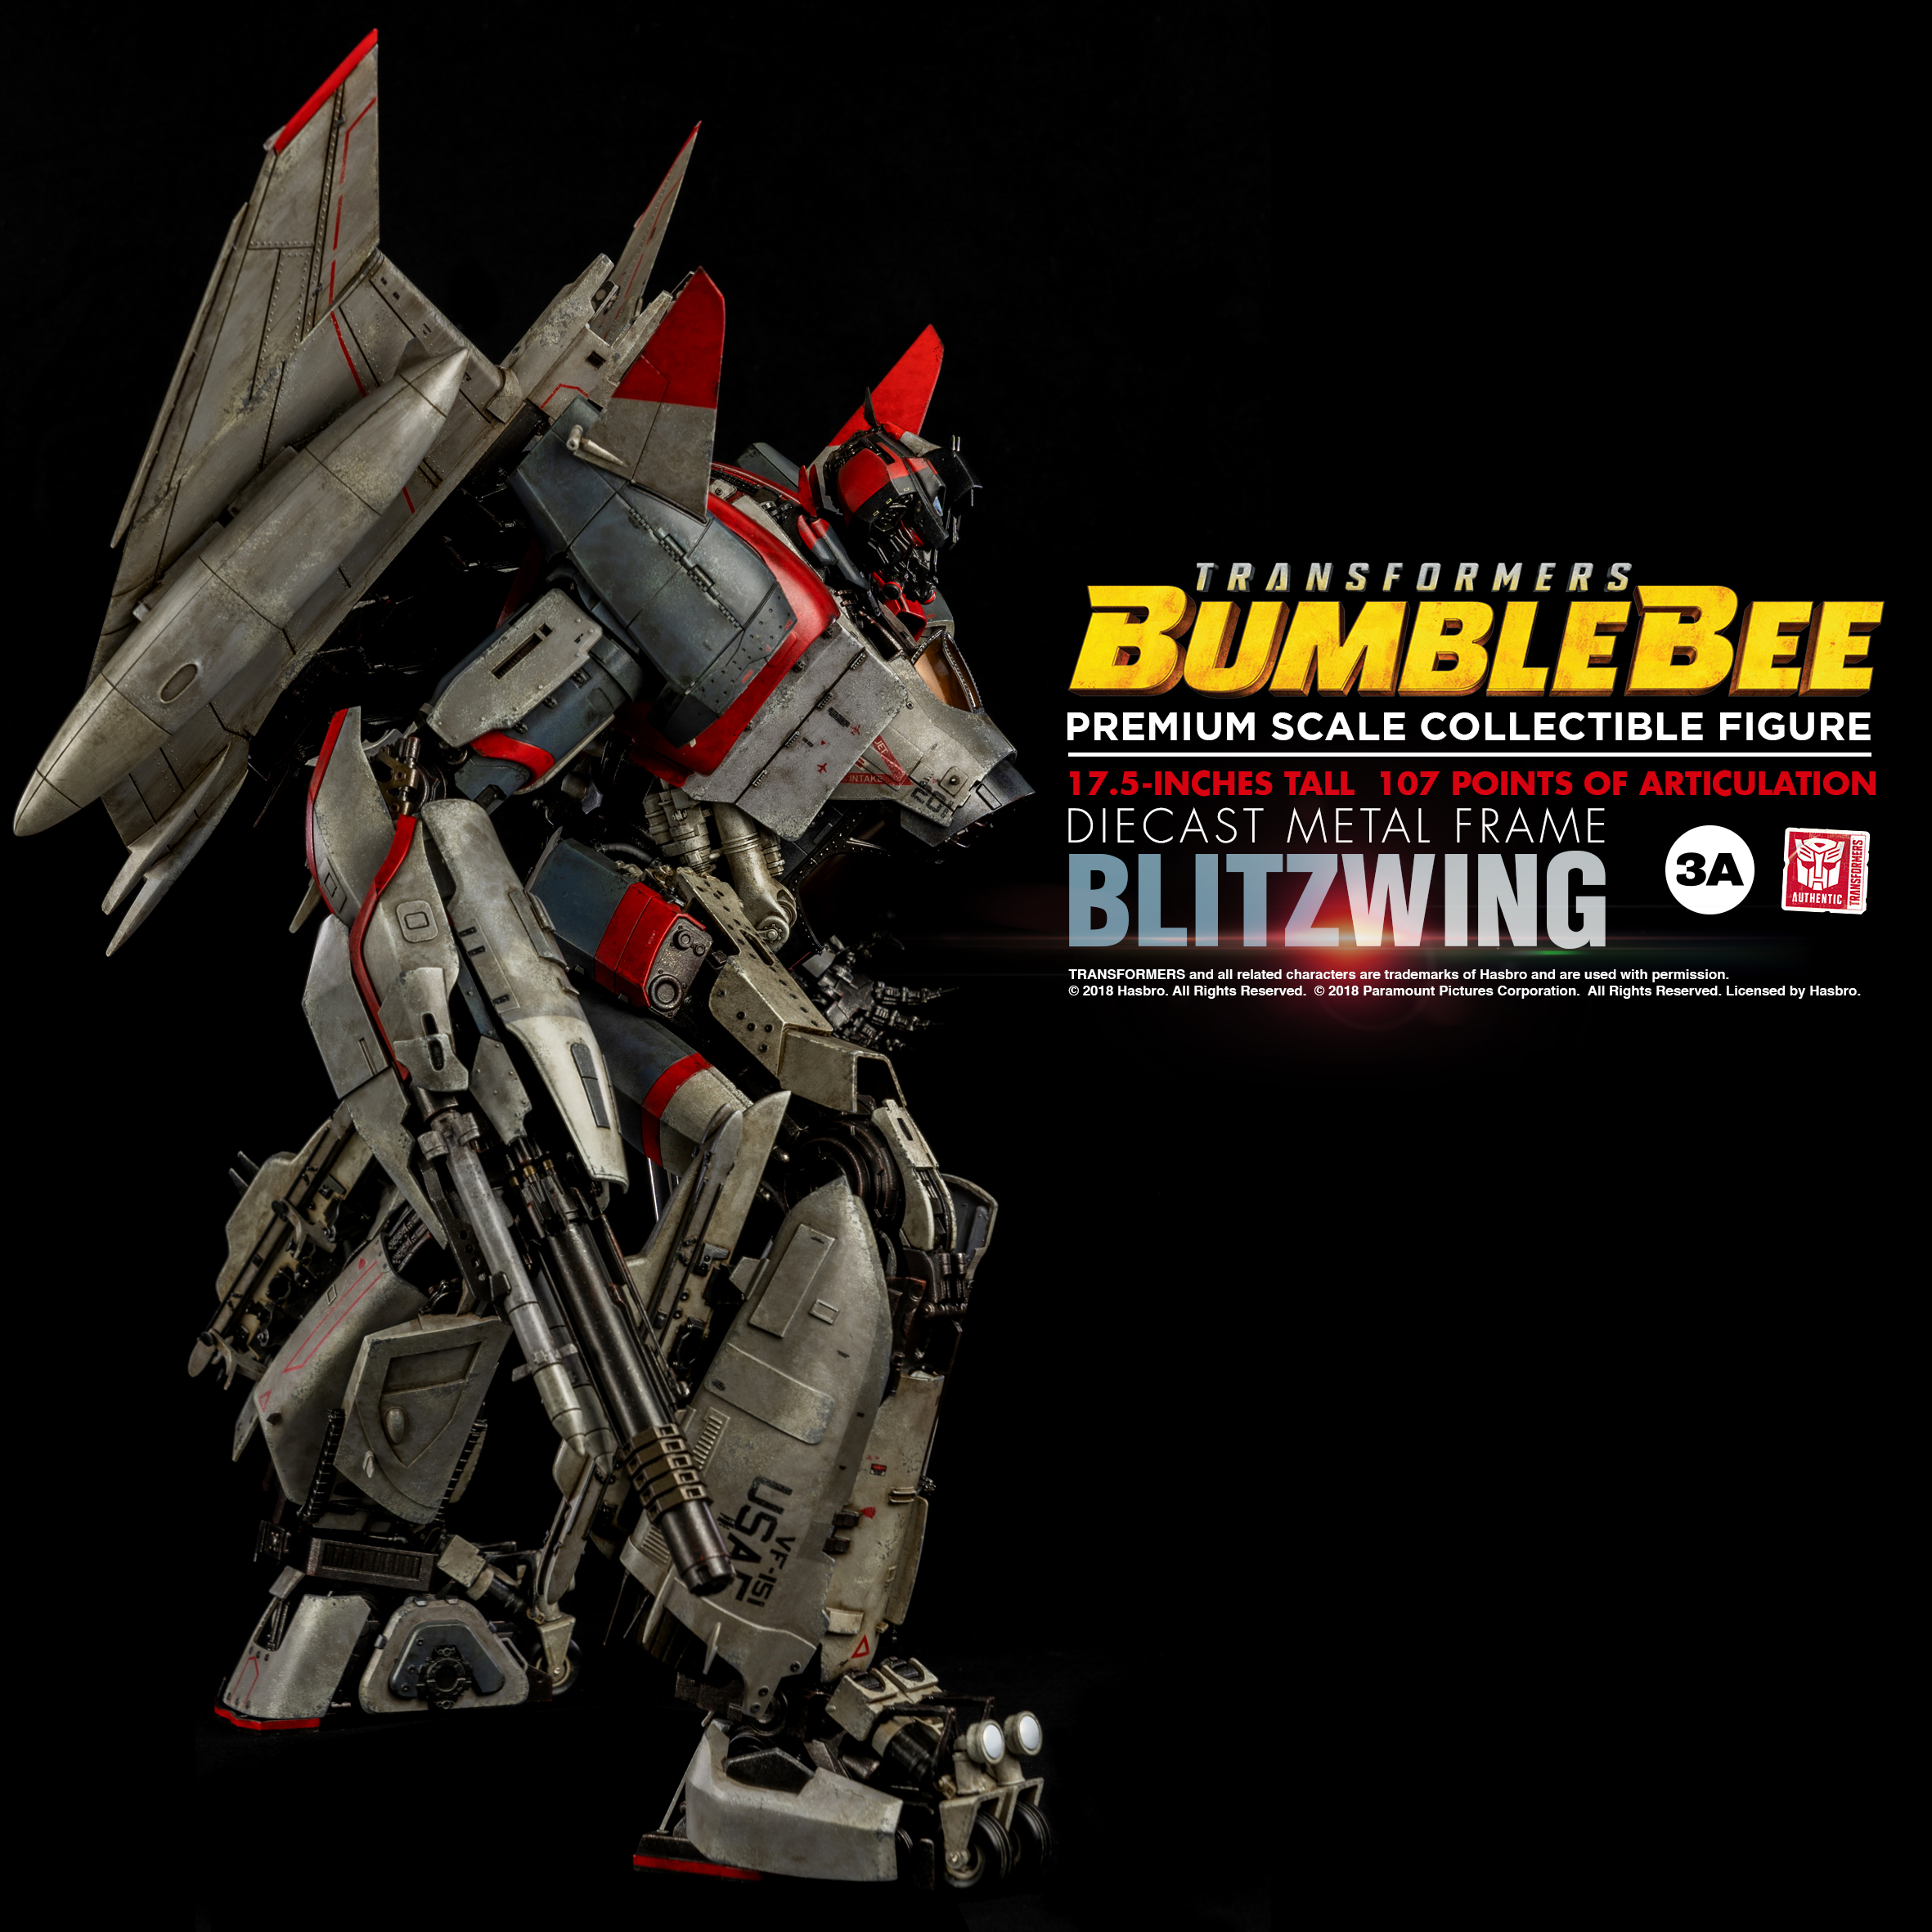 Blitzwing_PM_1049.jpg